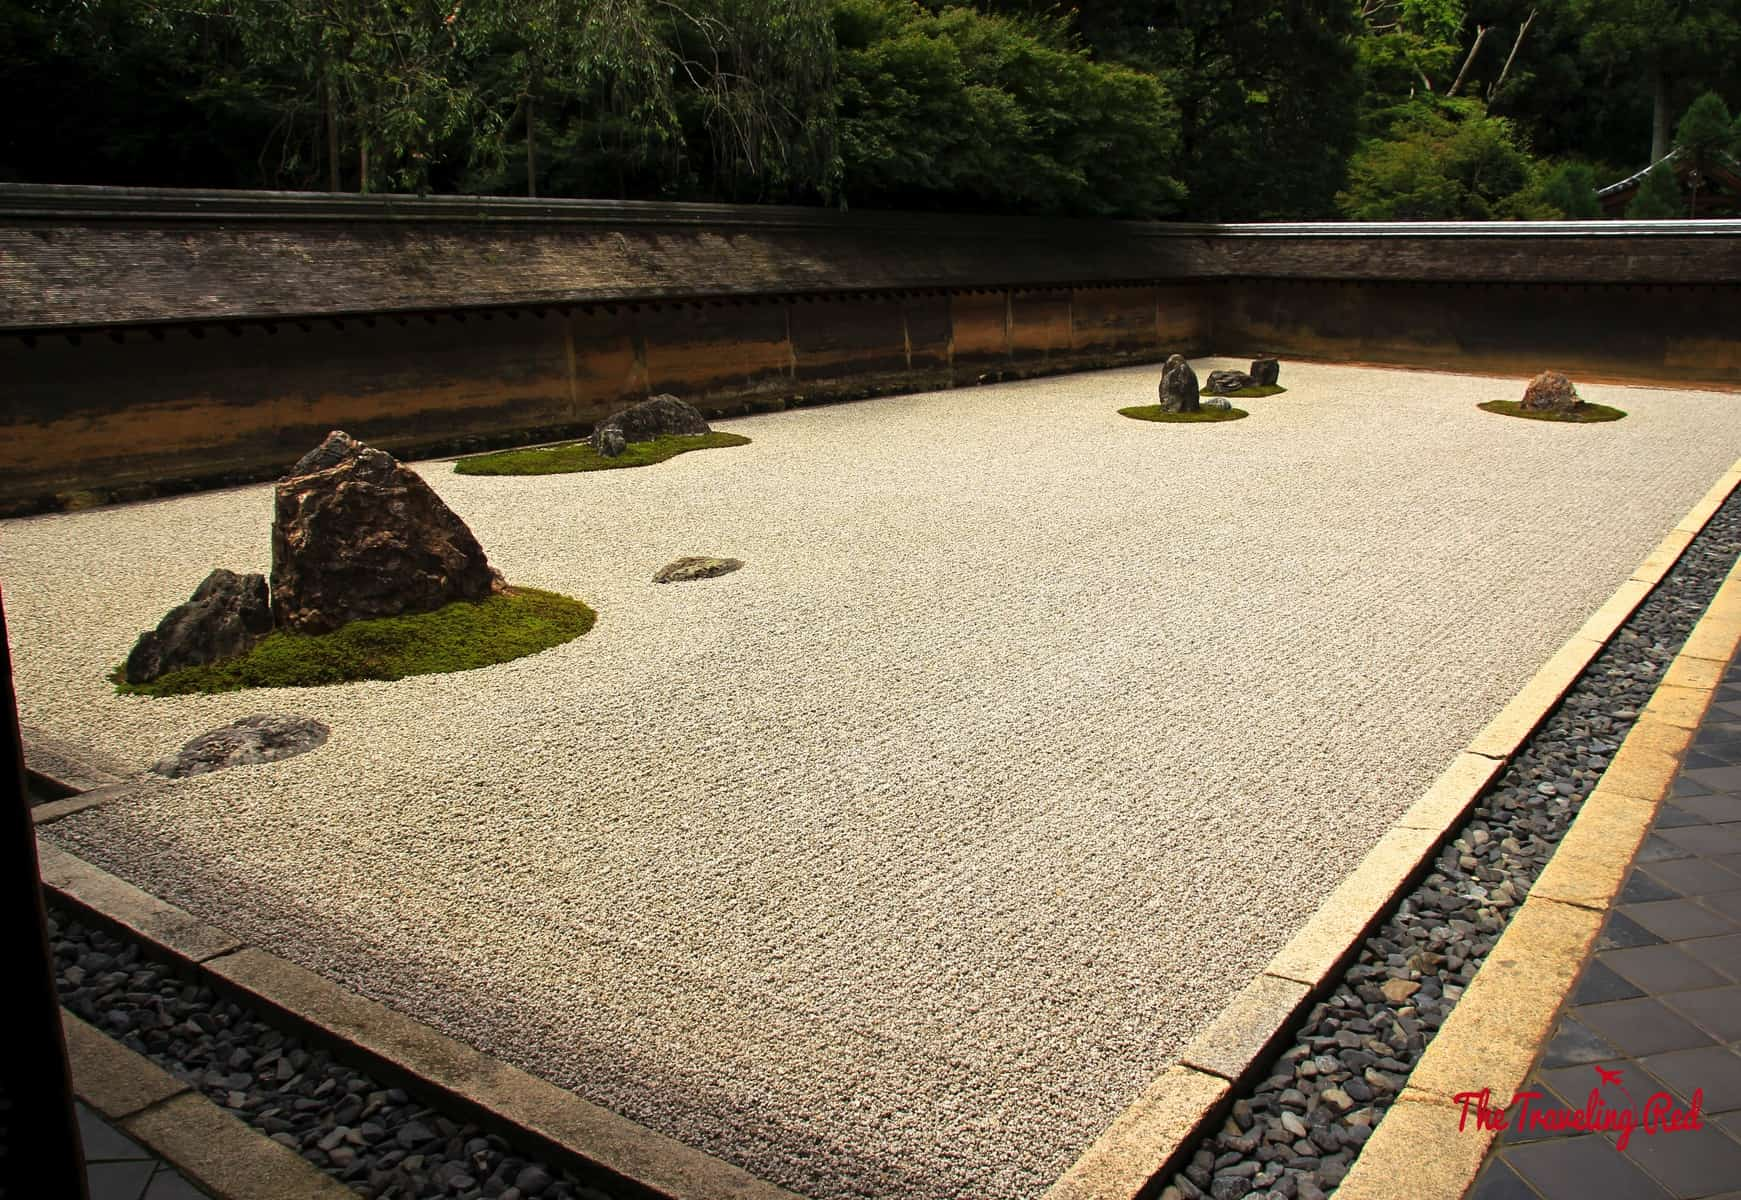 Near the Golden Temple in Kyoto, Japan is the Ryoan-ji Temple, known for the Zen Rock Garden